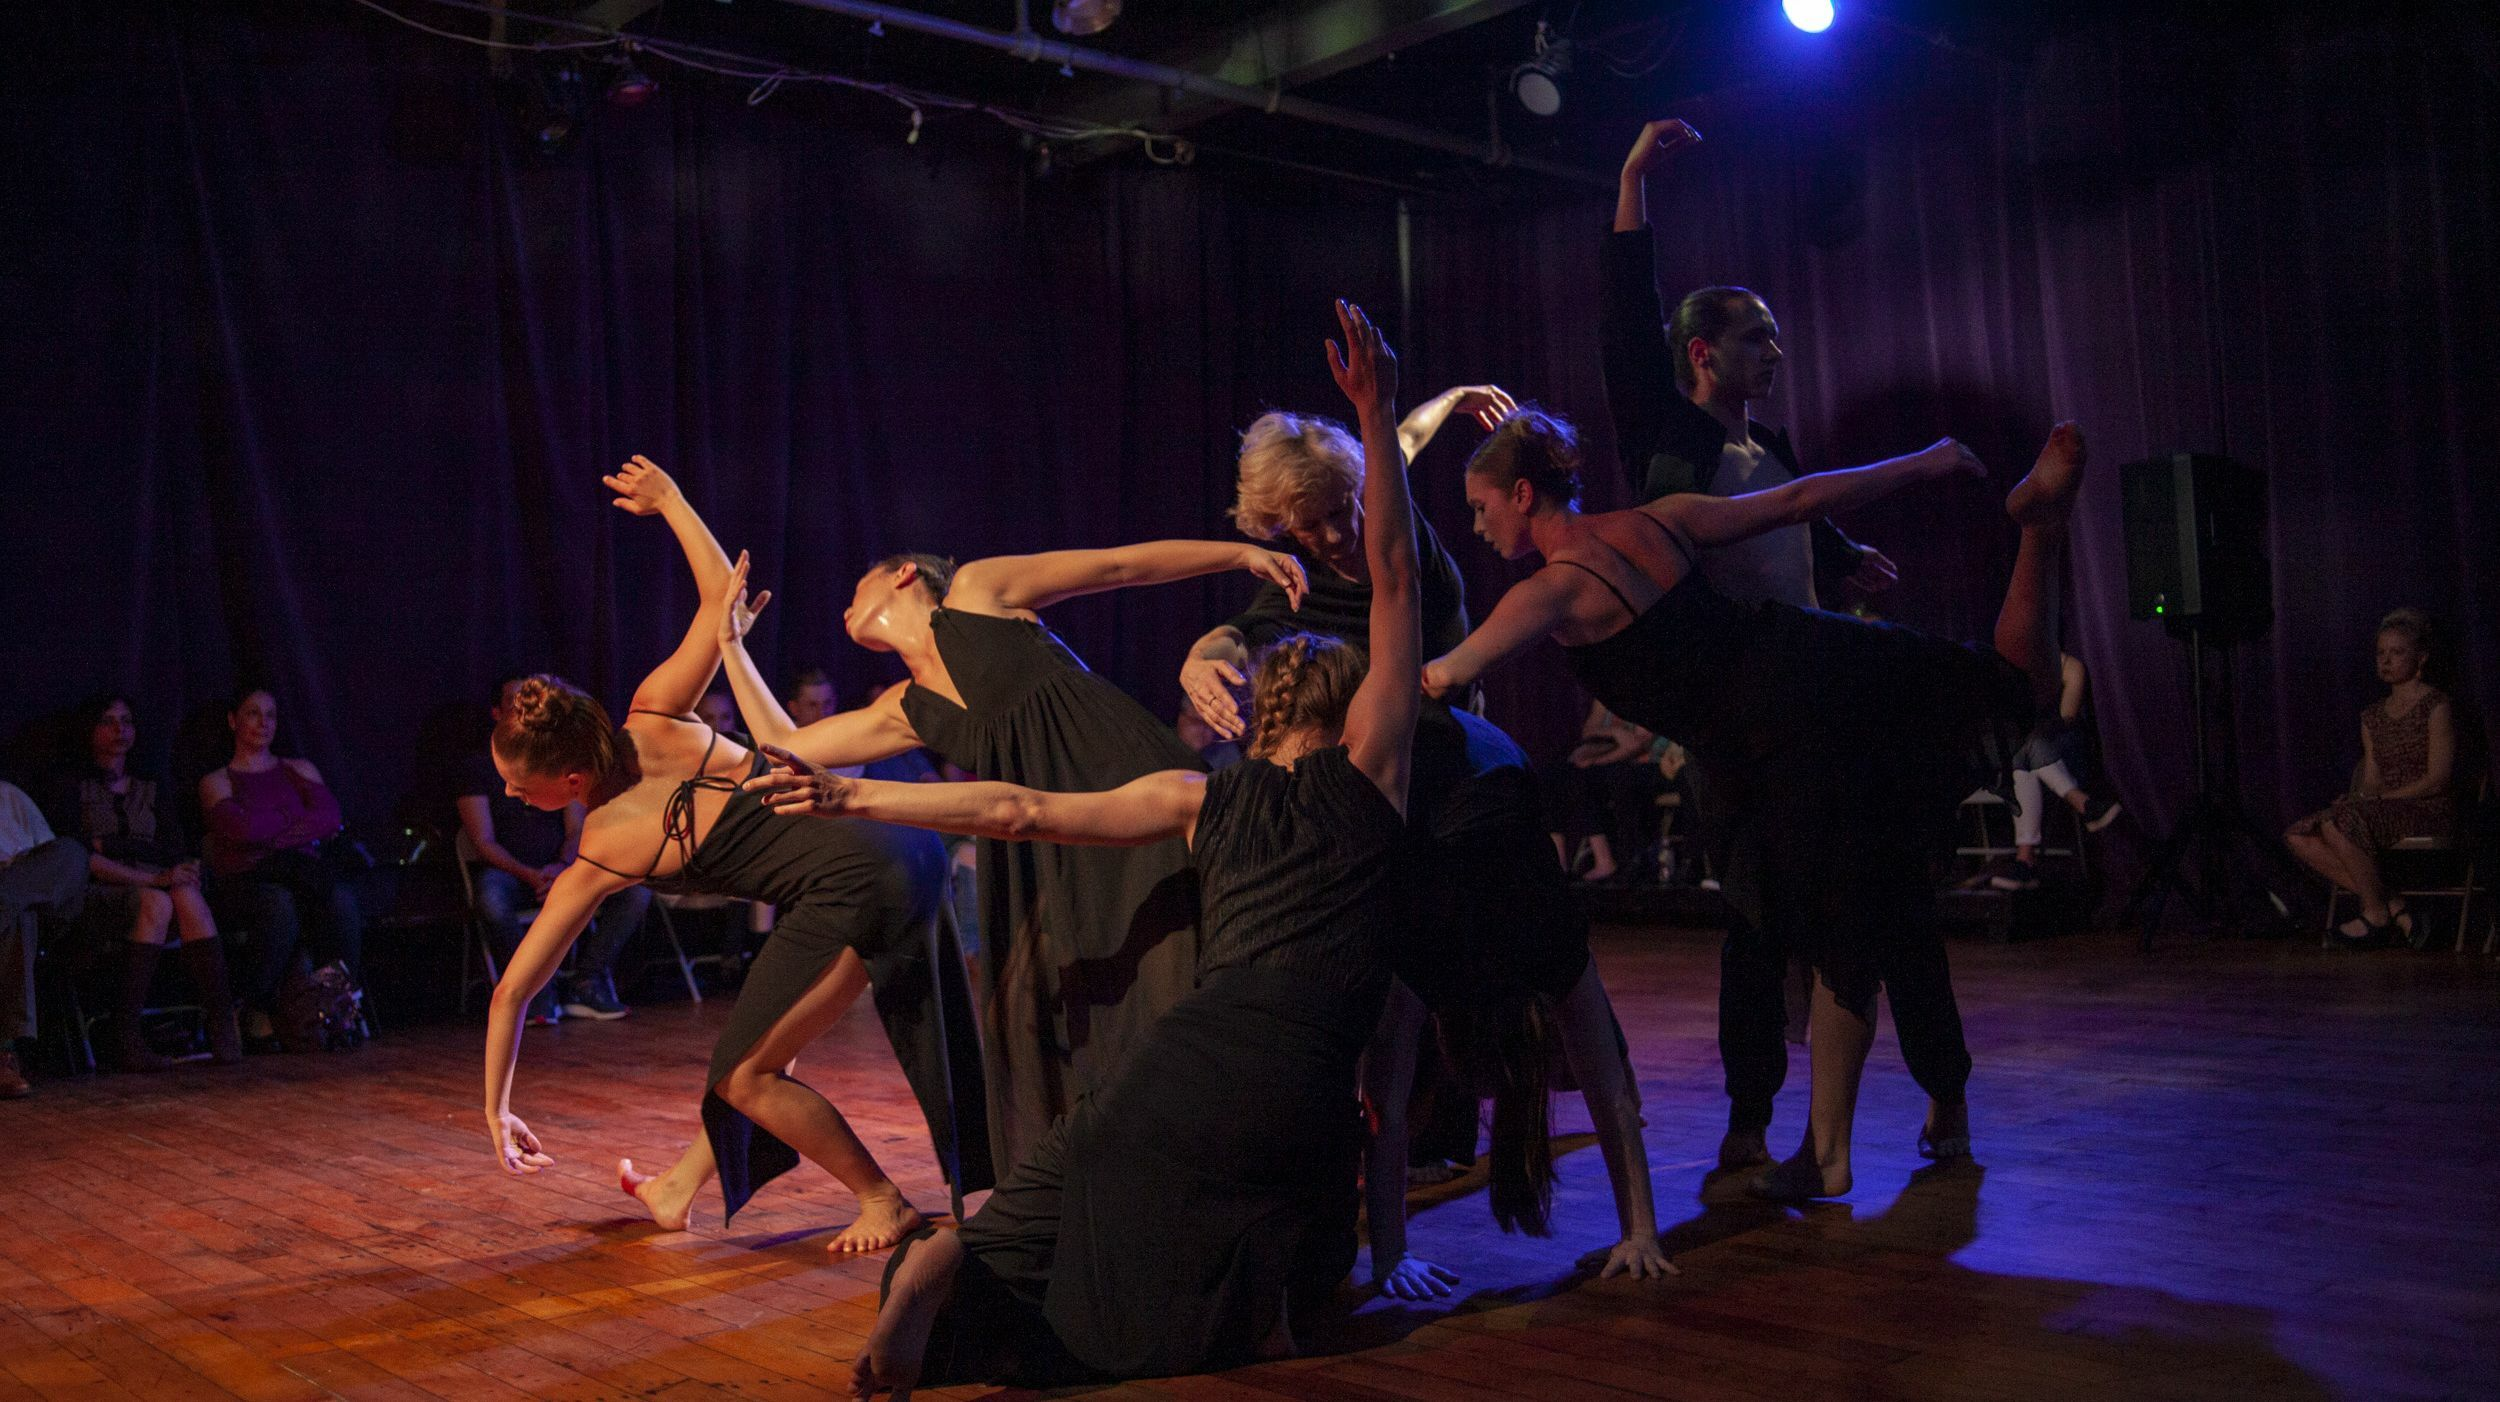 """Valerie Green/Dance Entropy in """"Everything"""": Online Performance"""